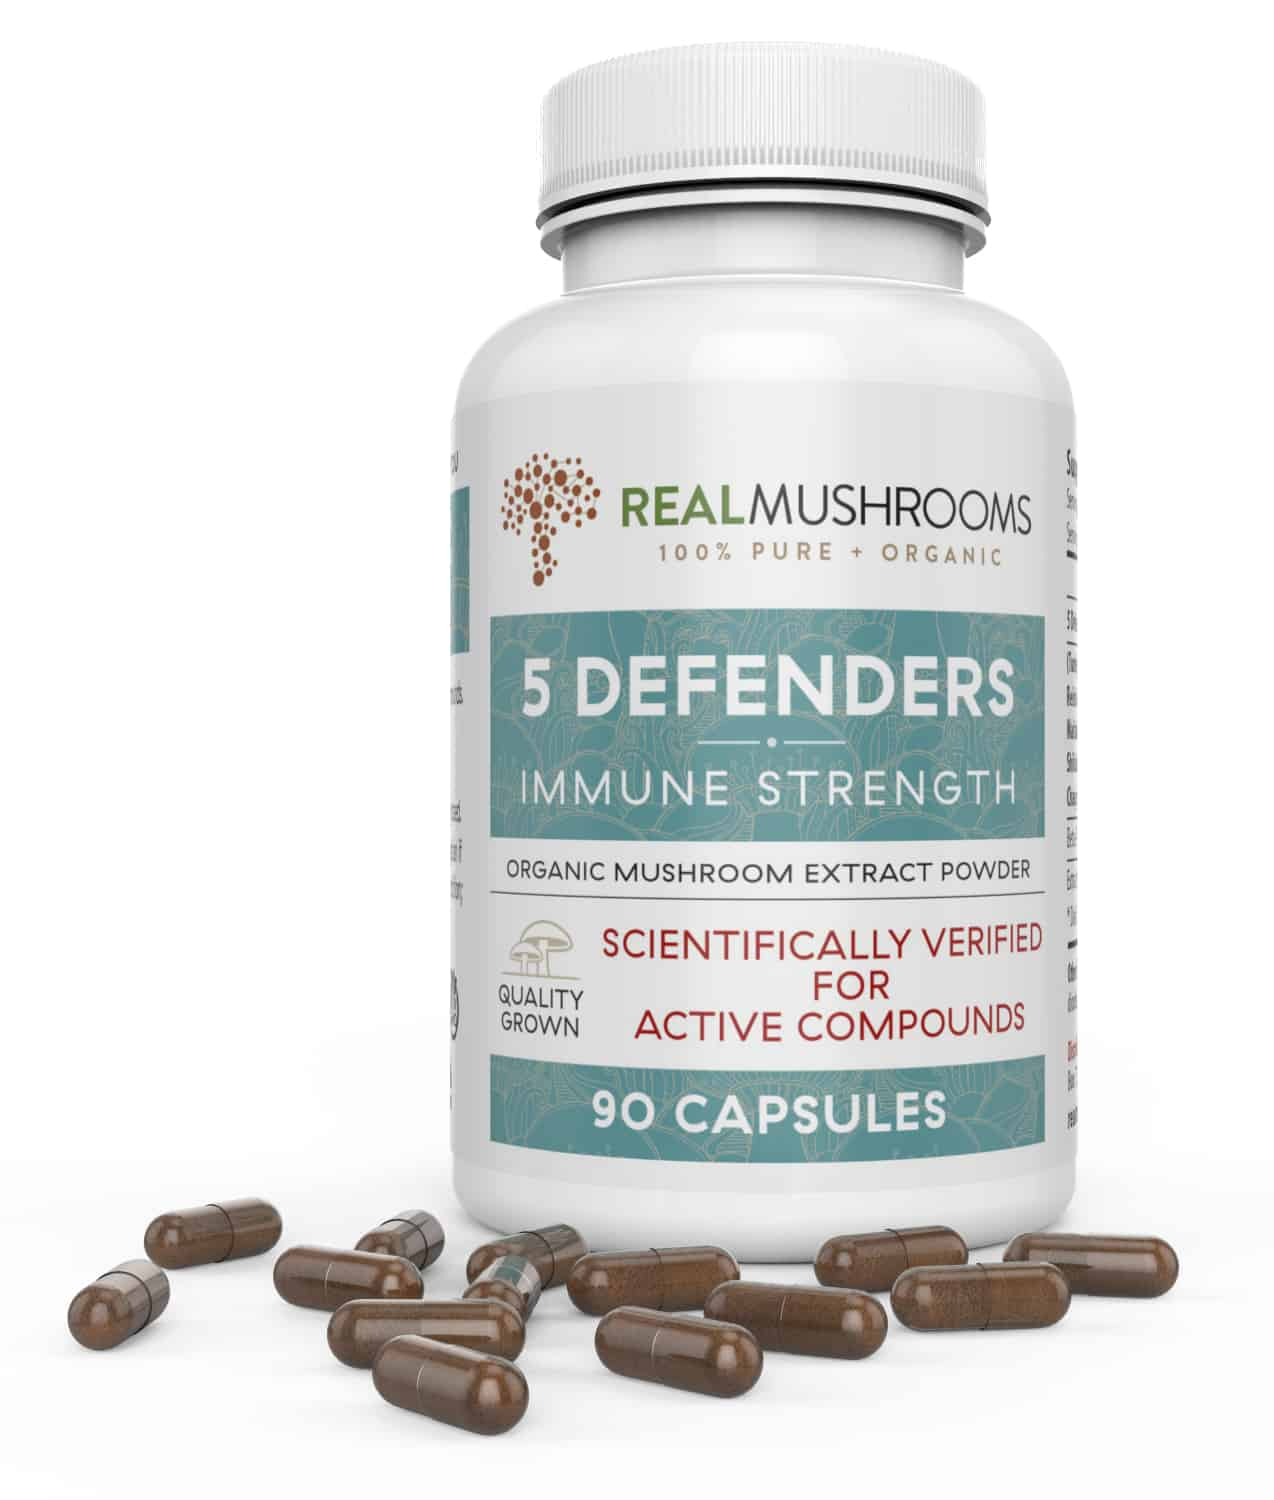 Real Mushrooms 5 Defenders Capsules